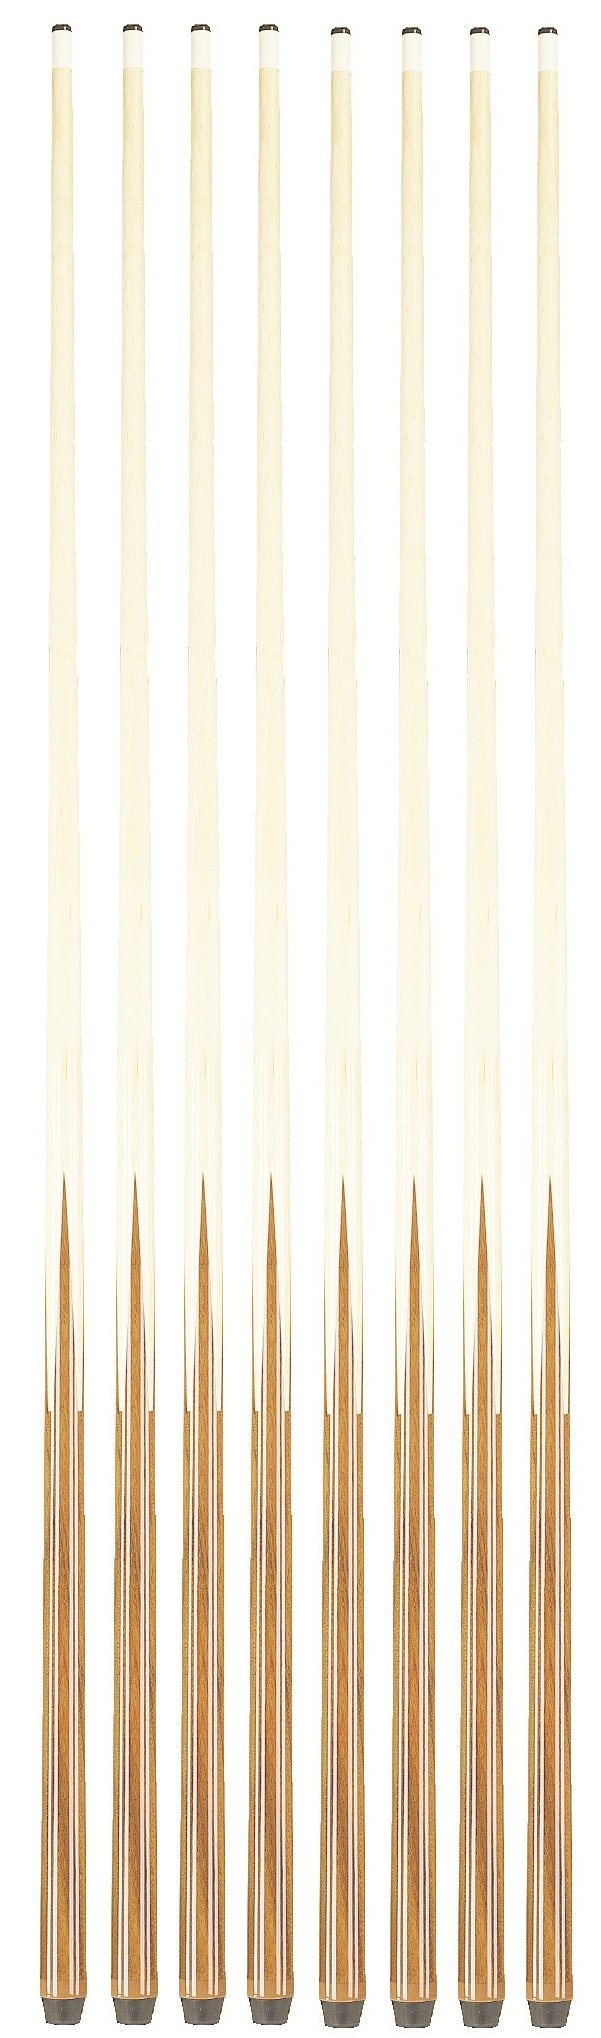 Players Set of 1 Piece House Pool Cue Sticks - Professional Quality For Commercial Or Residential Use (8 Cues)